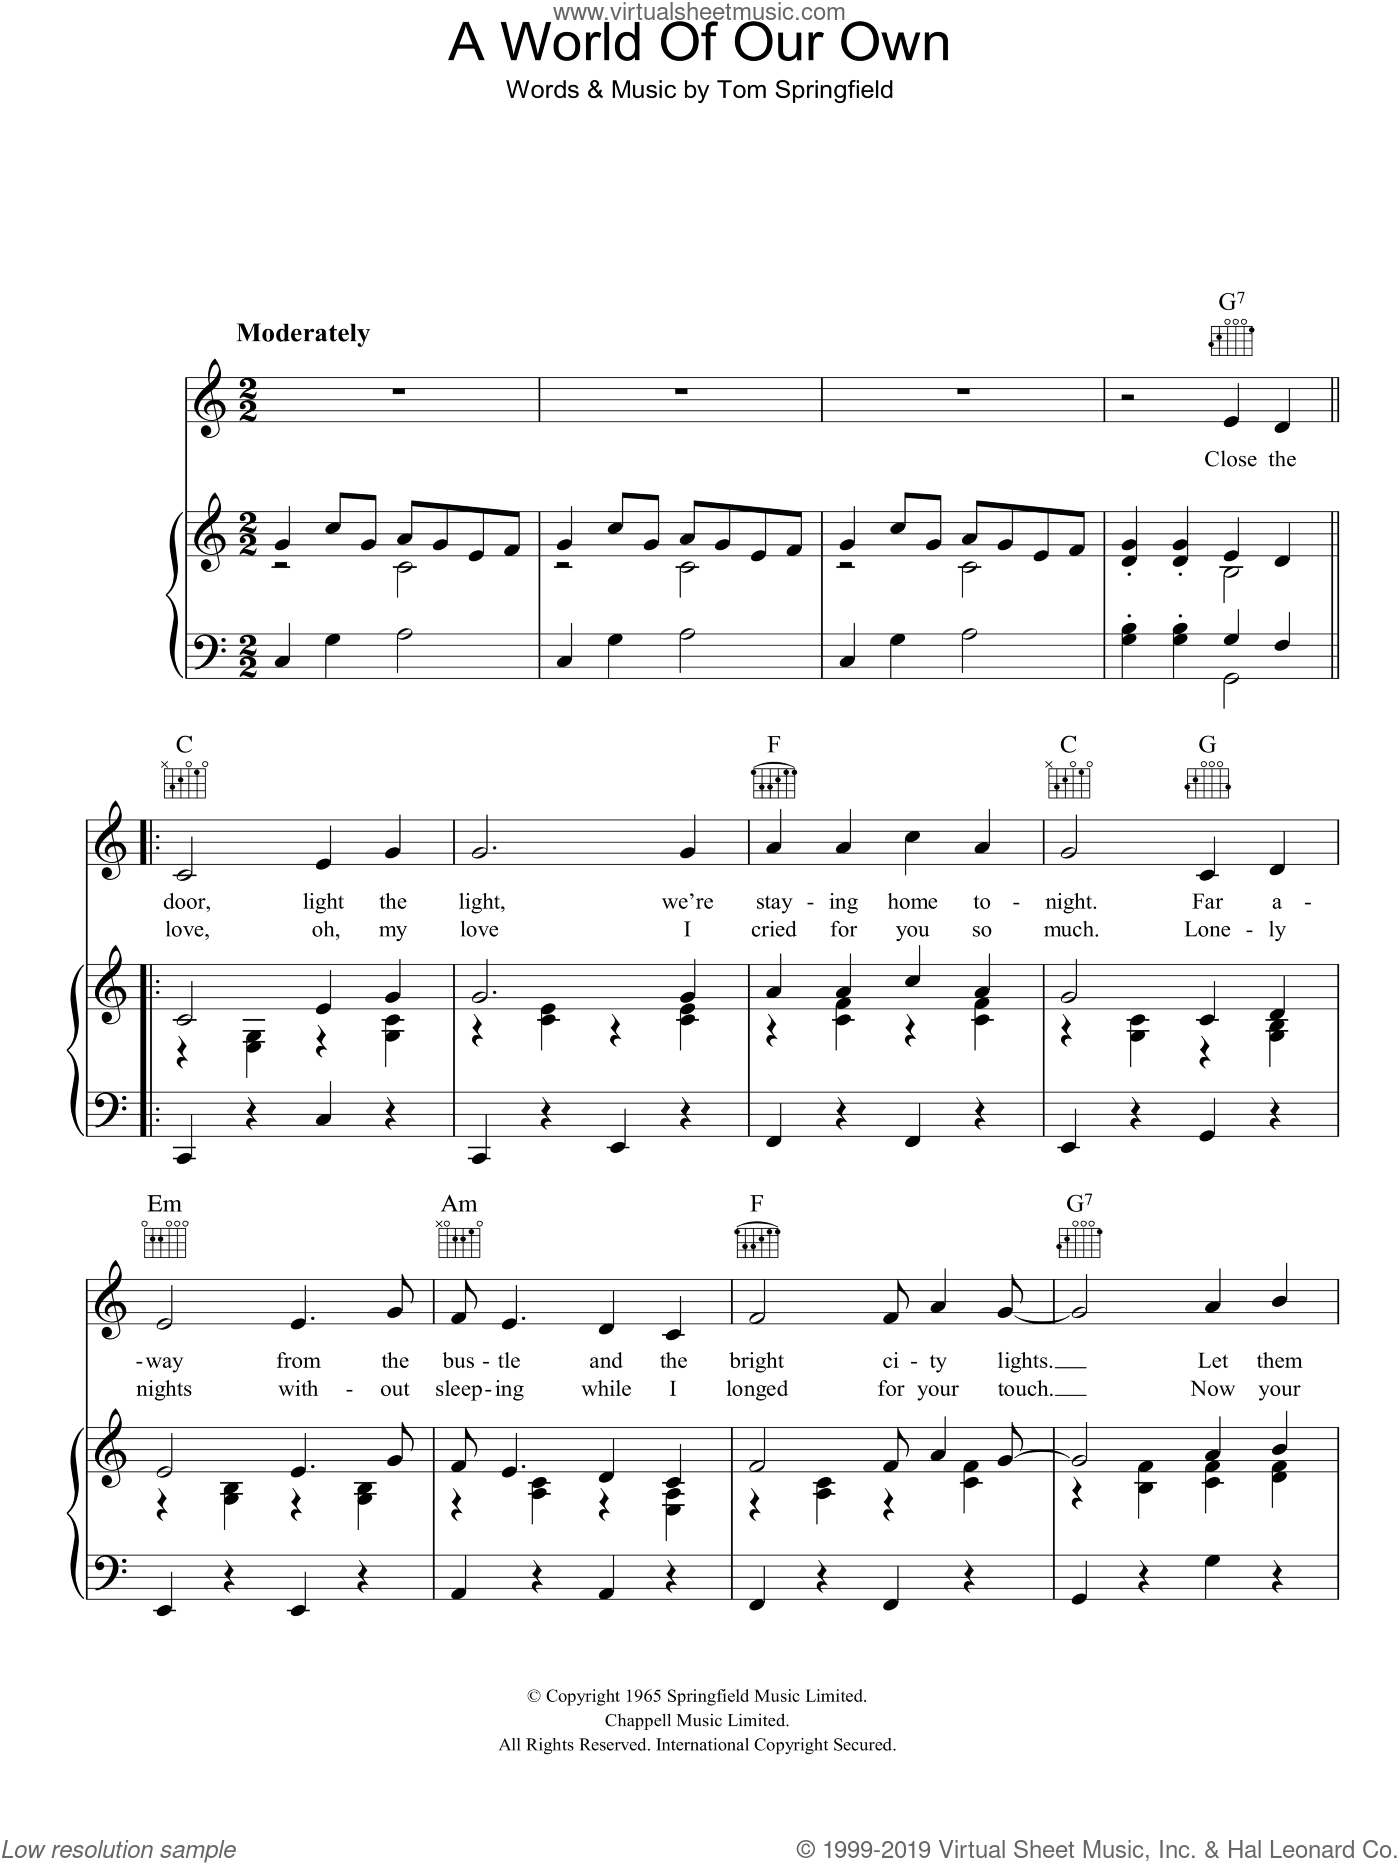 A World Of Our Own sheet music for voice, piano or guitar by Tom Springfield